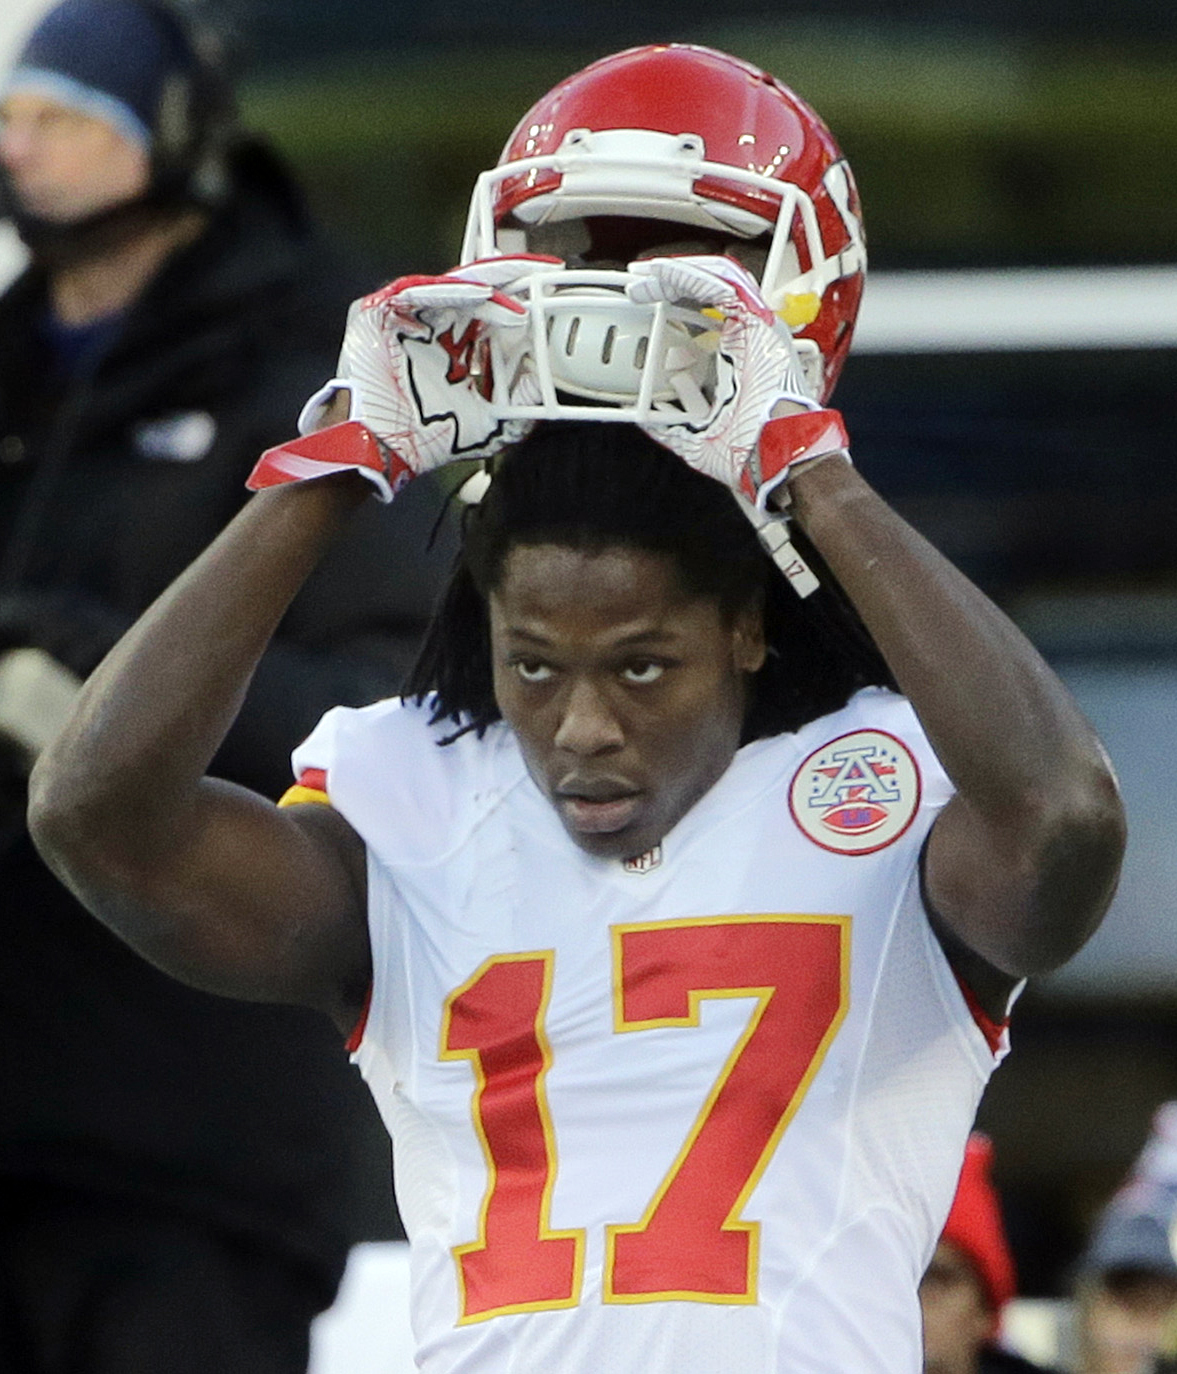 FILE - In this Jan. 16, 2016, file photoKansas City Chiefs wide receiver Chris Conley warms up before an NFL divisional playoff football game against the New England Patriots  in Foxborough, Mass. The NFL, hoping to help current and former players transit